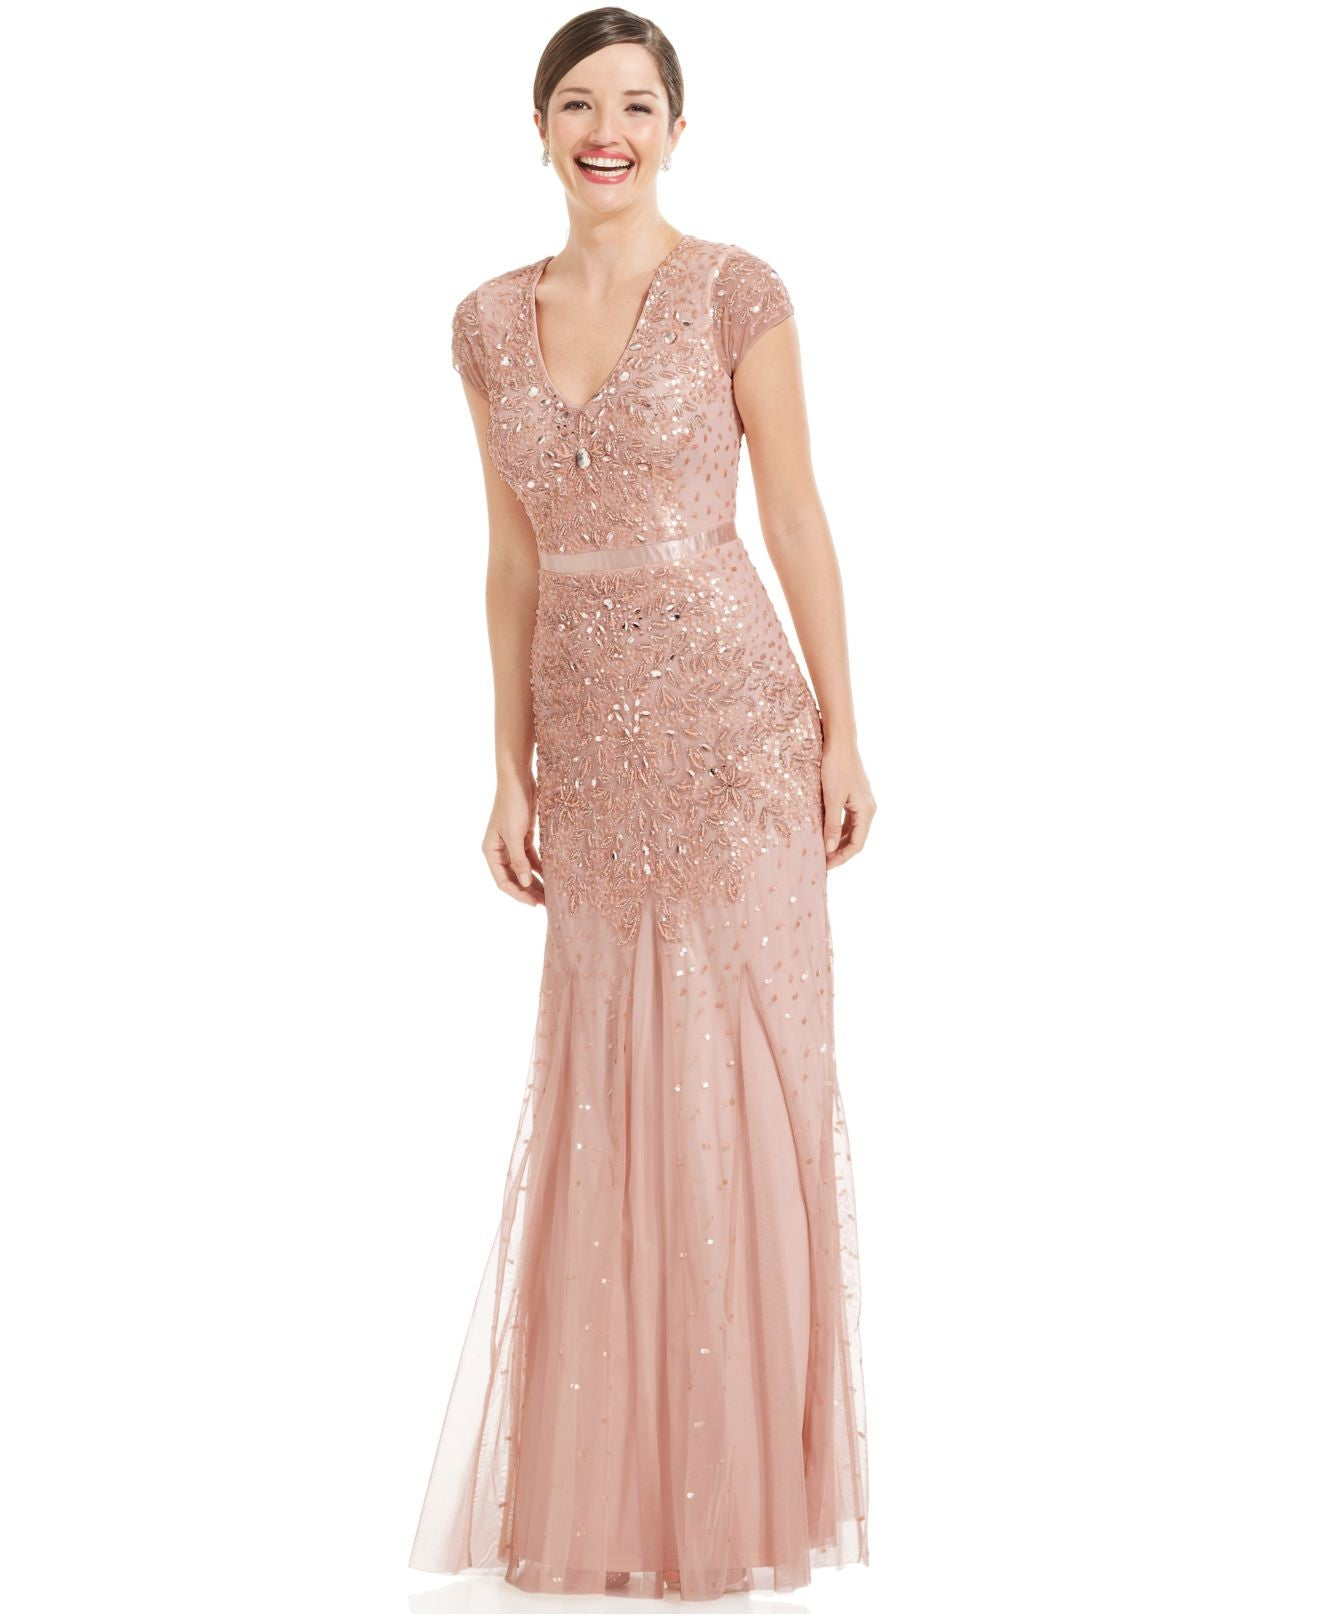 Adrianna Papell Cap-sleeve Beaded Embellished Gown - Blush